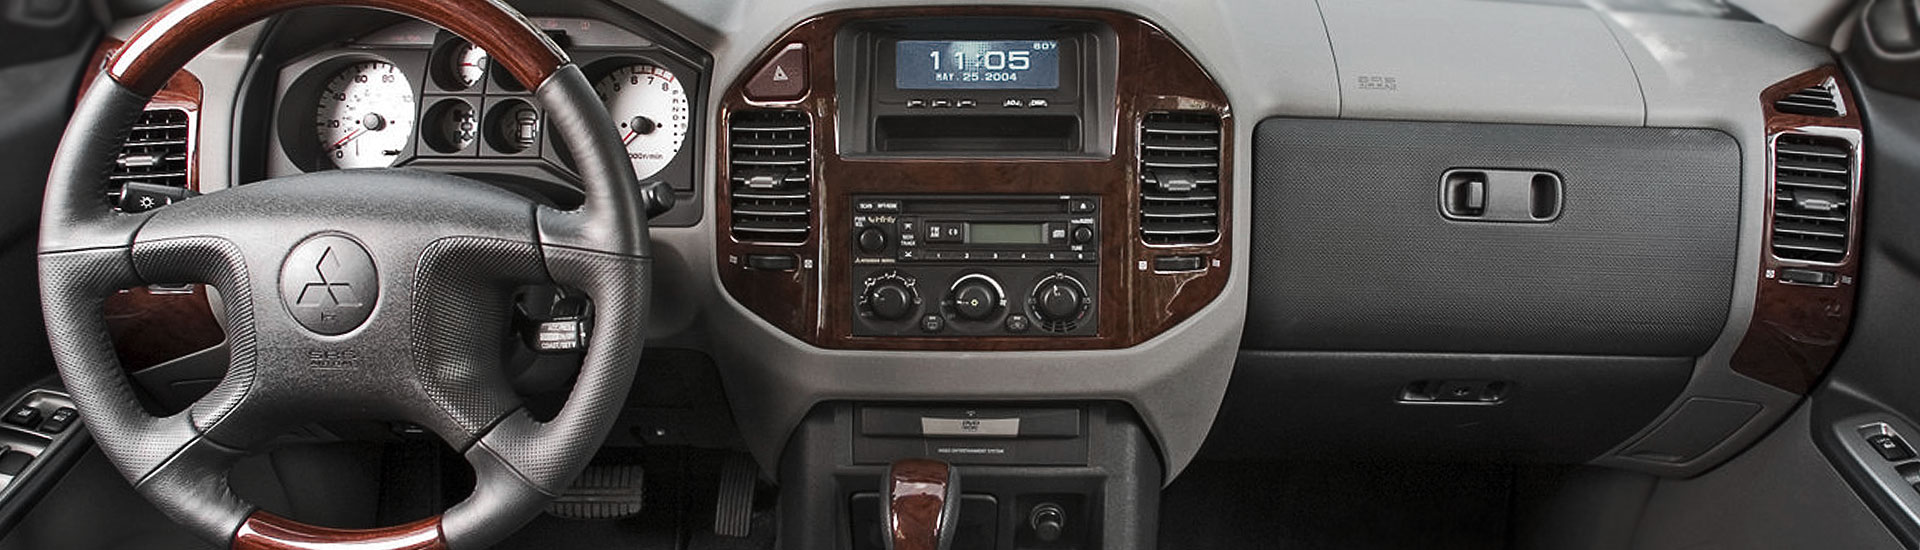 1995 Mitsubishi 3000GT Custom Dash Kits